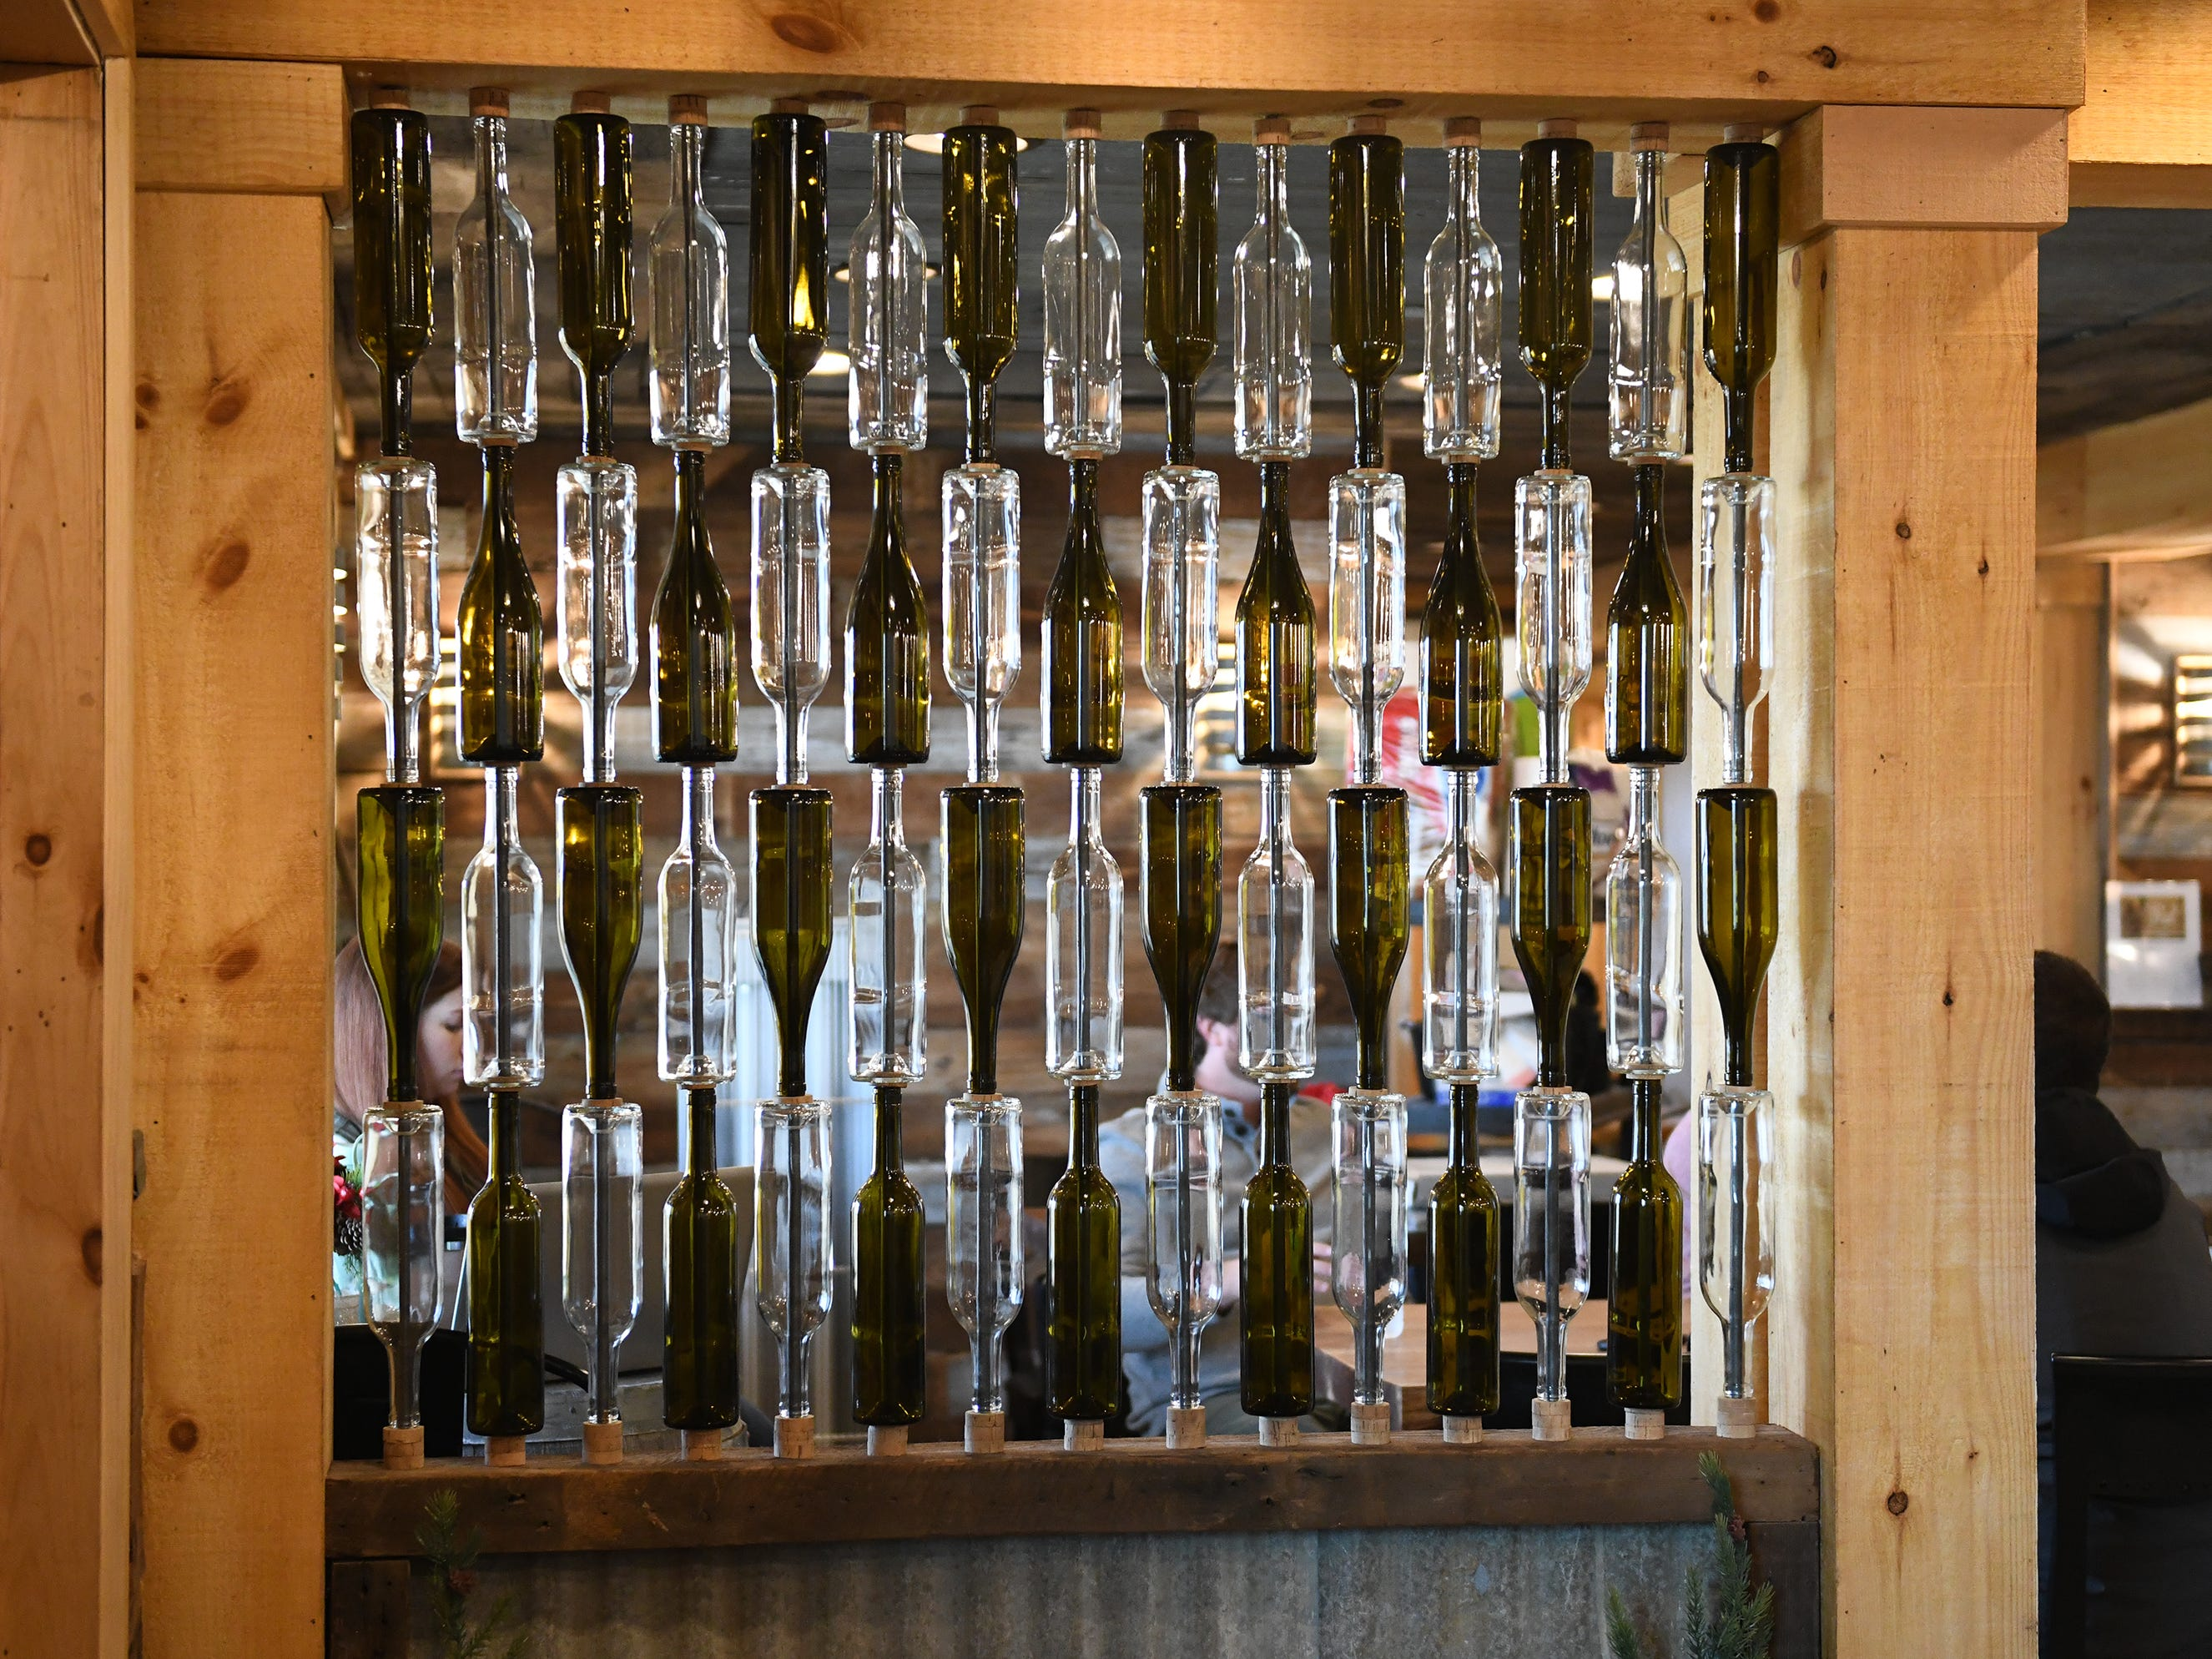 Stacked wine bottles create a artistic element to the entrance of Cedar Rose Vineyards in Rosenhayn on Tuesday, January 8, 2019.